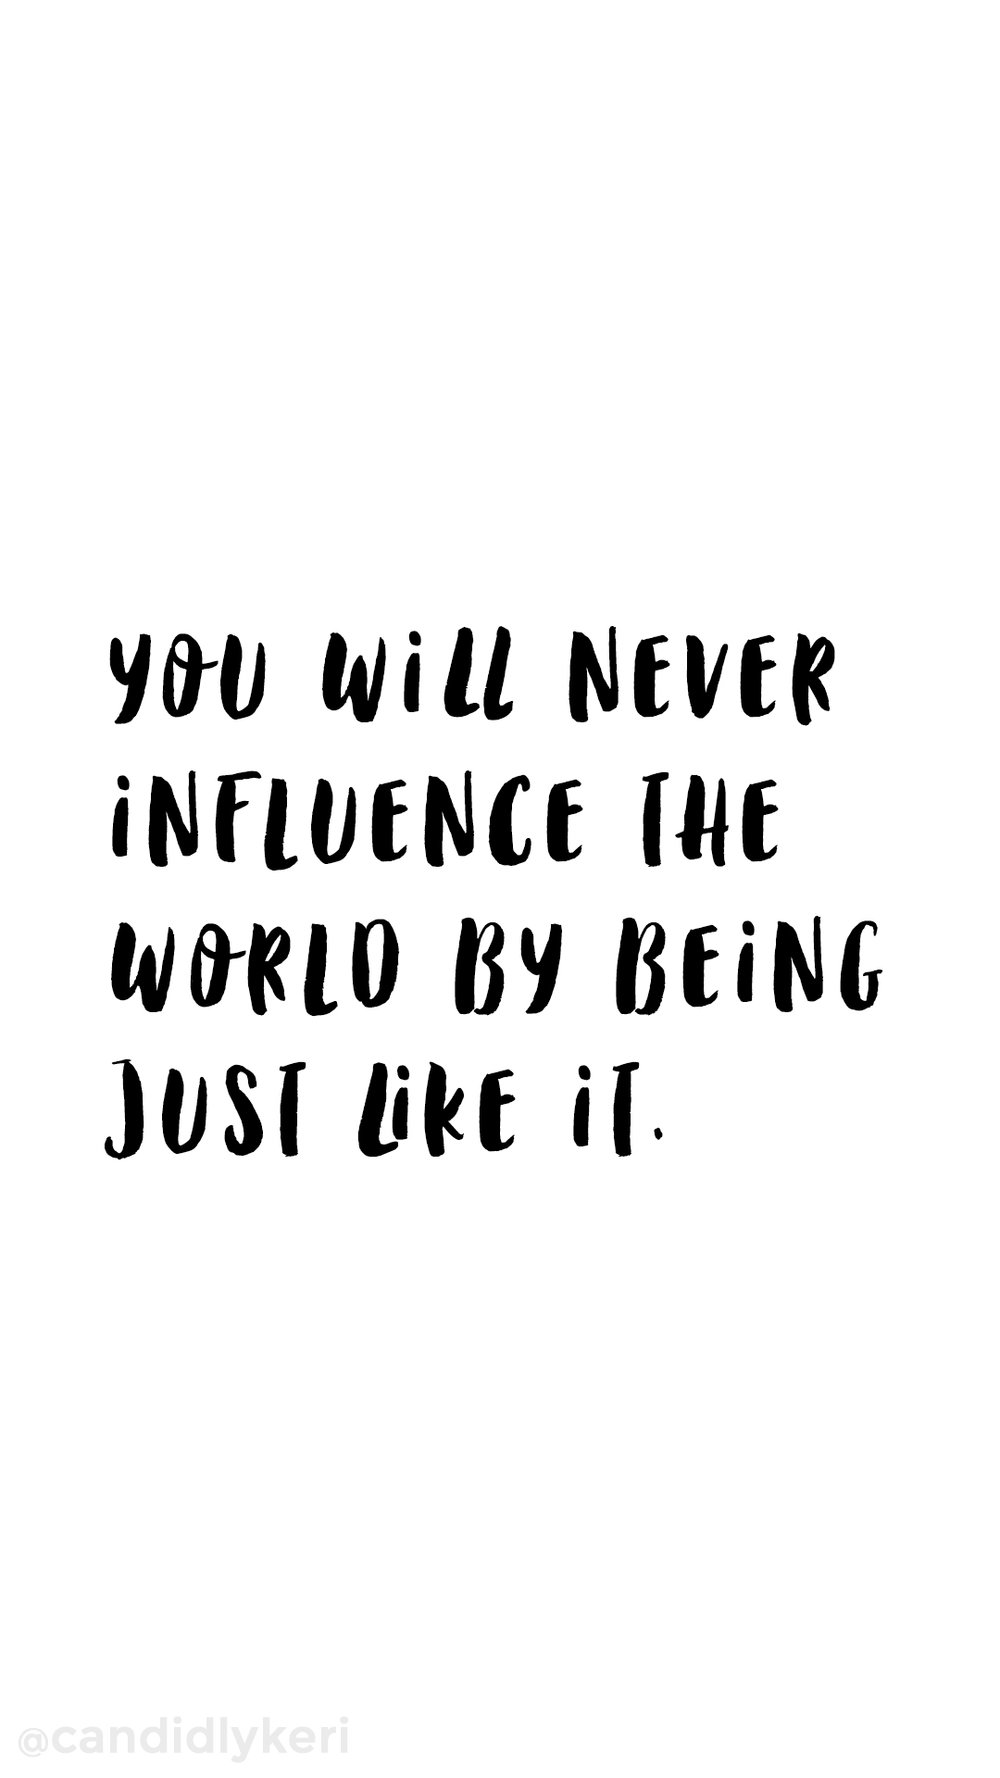 You will never influence the world by being just like it